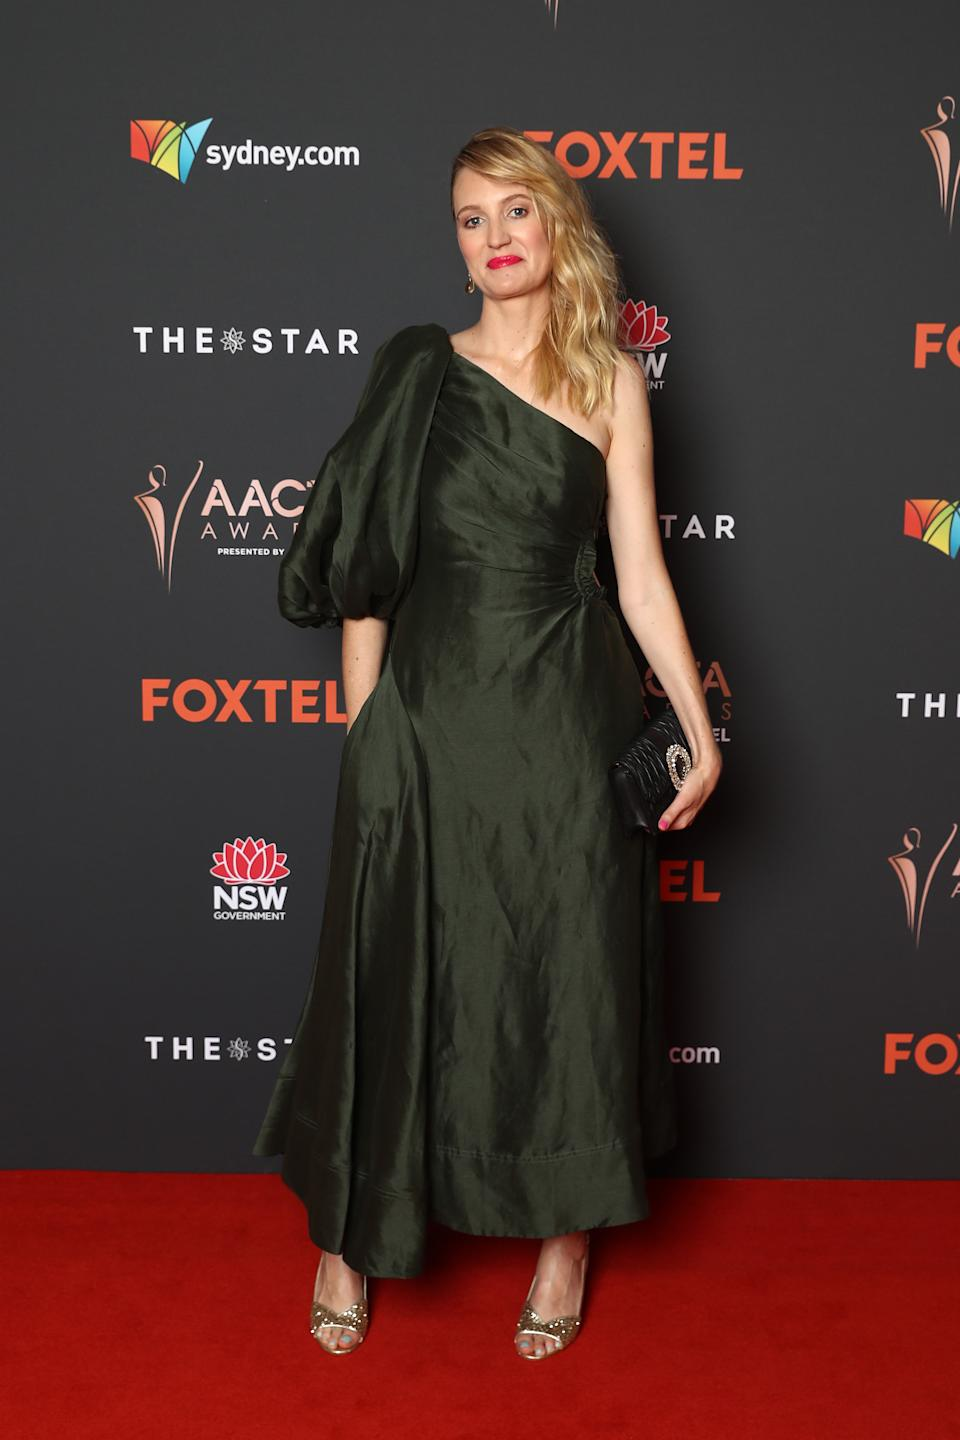 Shannon Murphy arrives ahead of the 2020 AACTA Awards presented by Foxtel at The Star on November 30, 2020 in Sydney, Australia